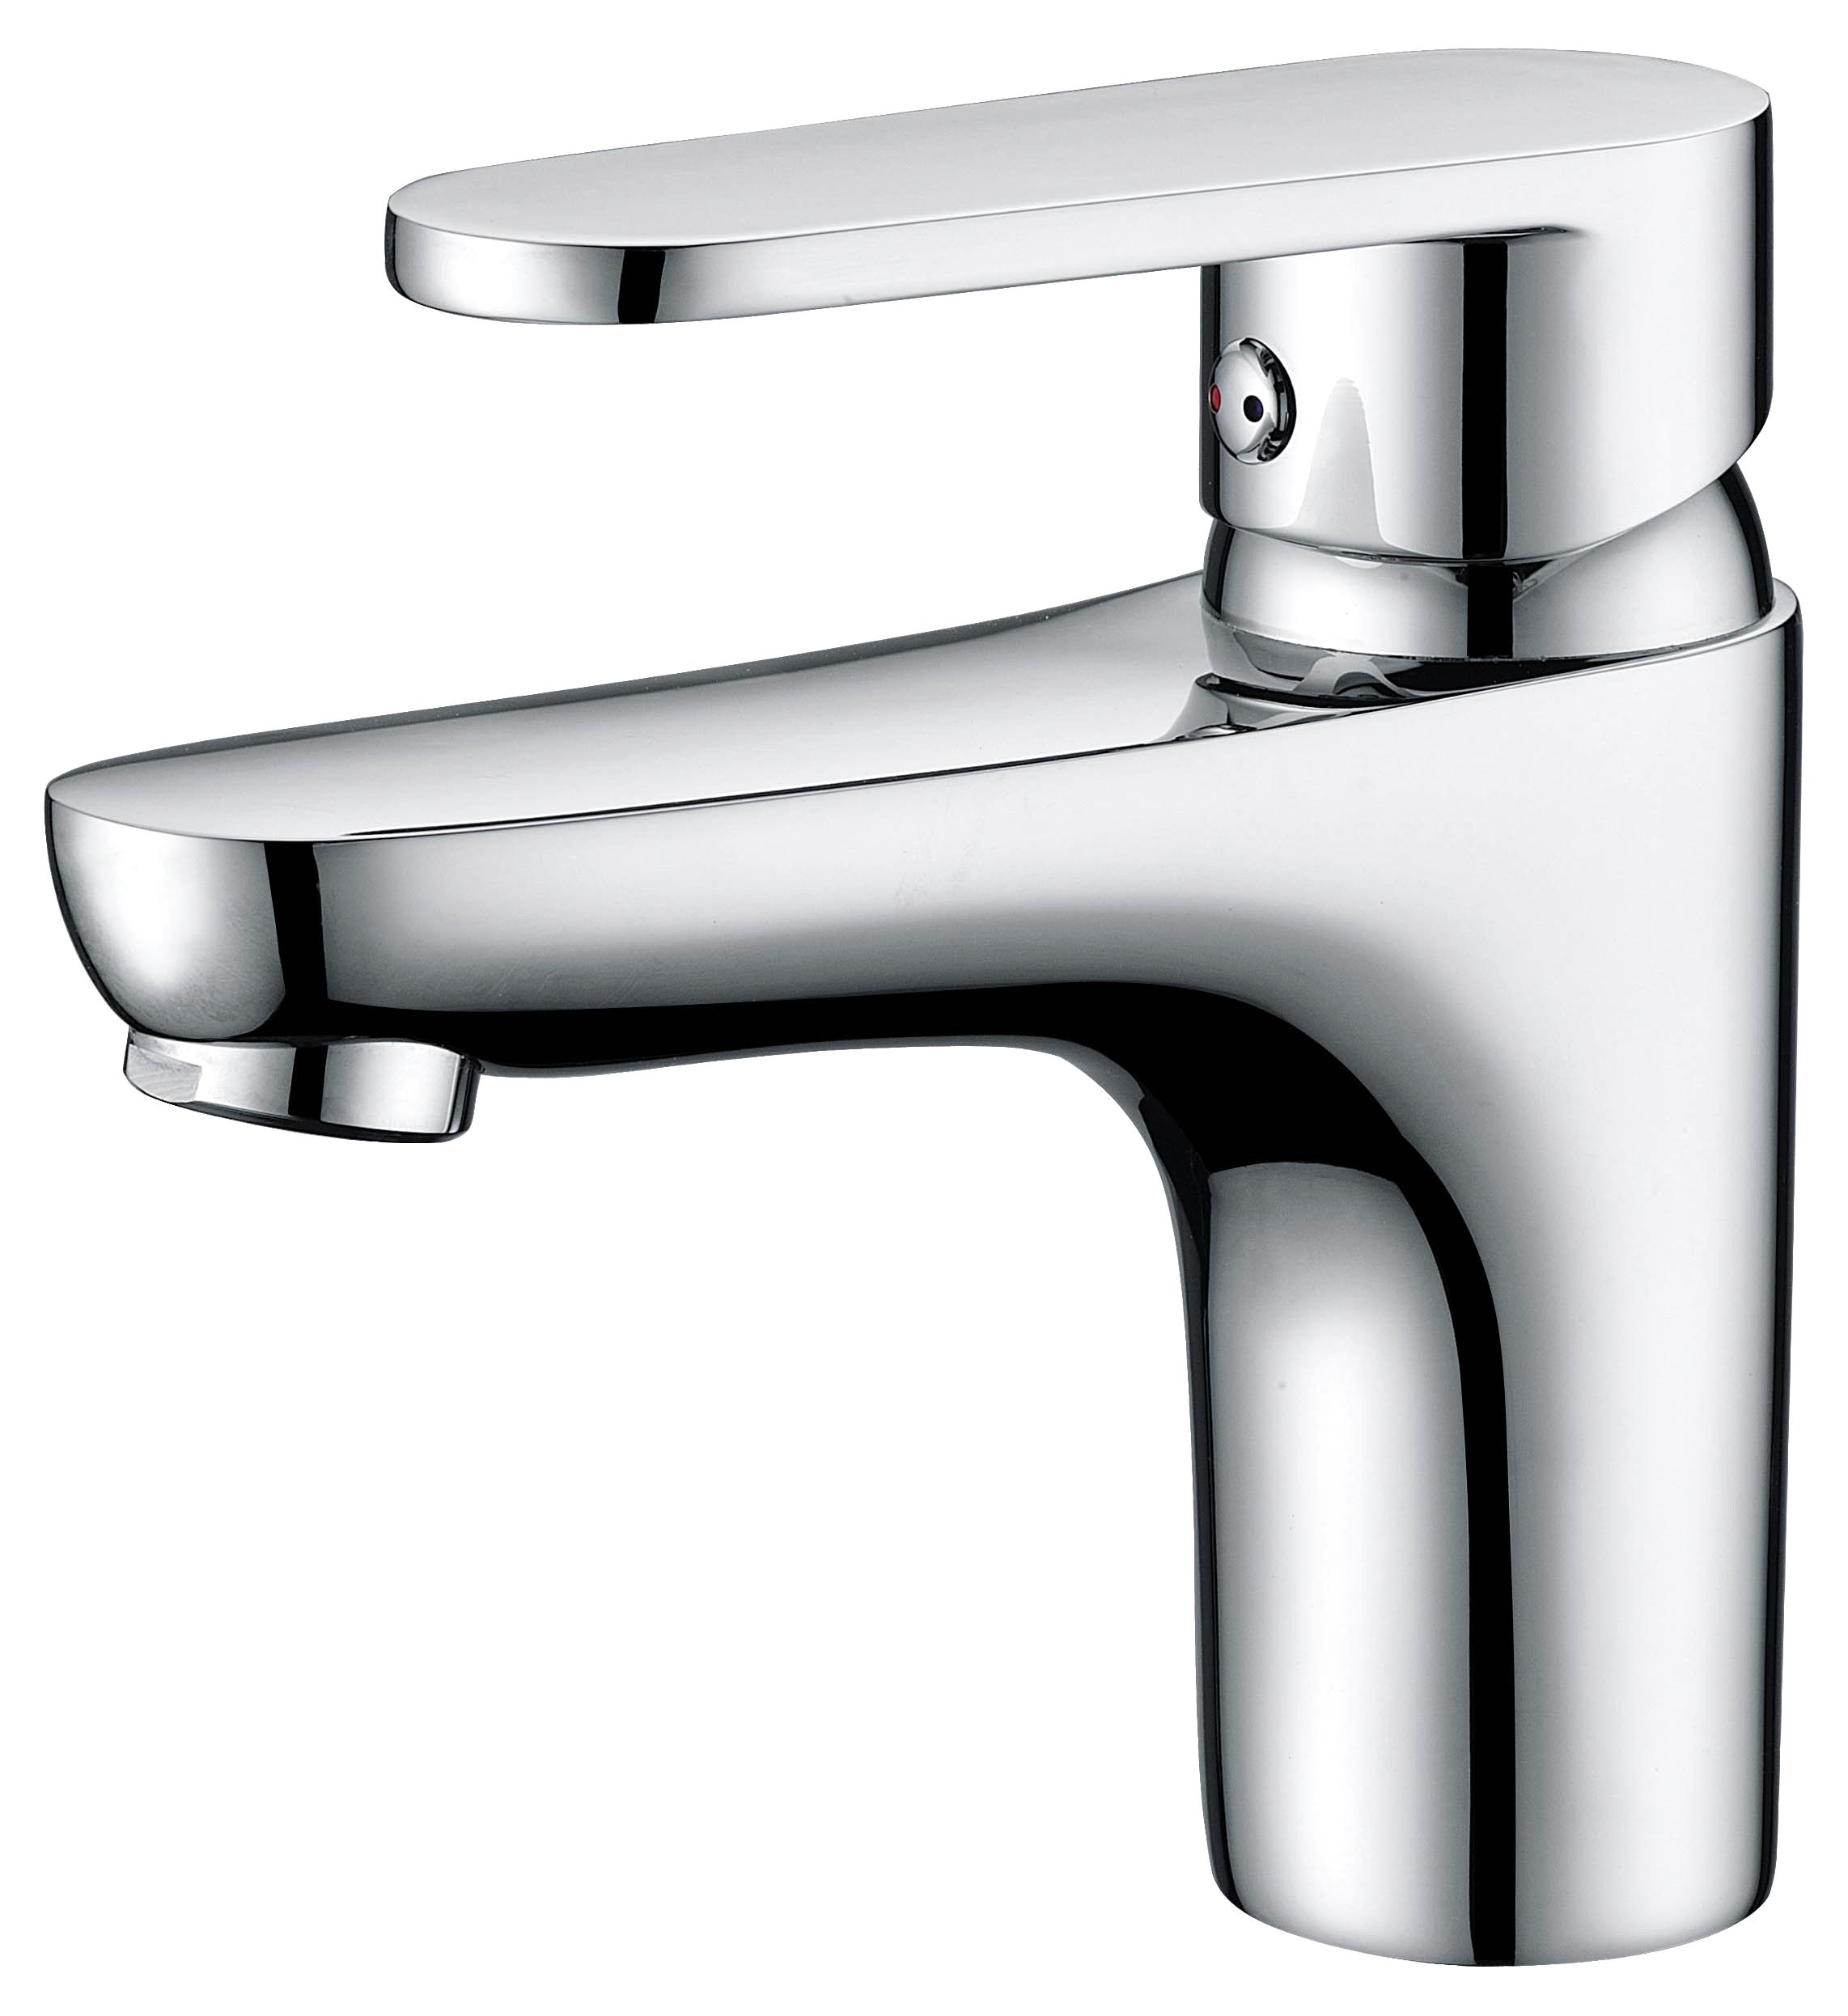 brass faucet-Single handle basin mixer-JHF138C